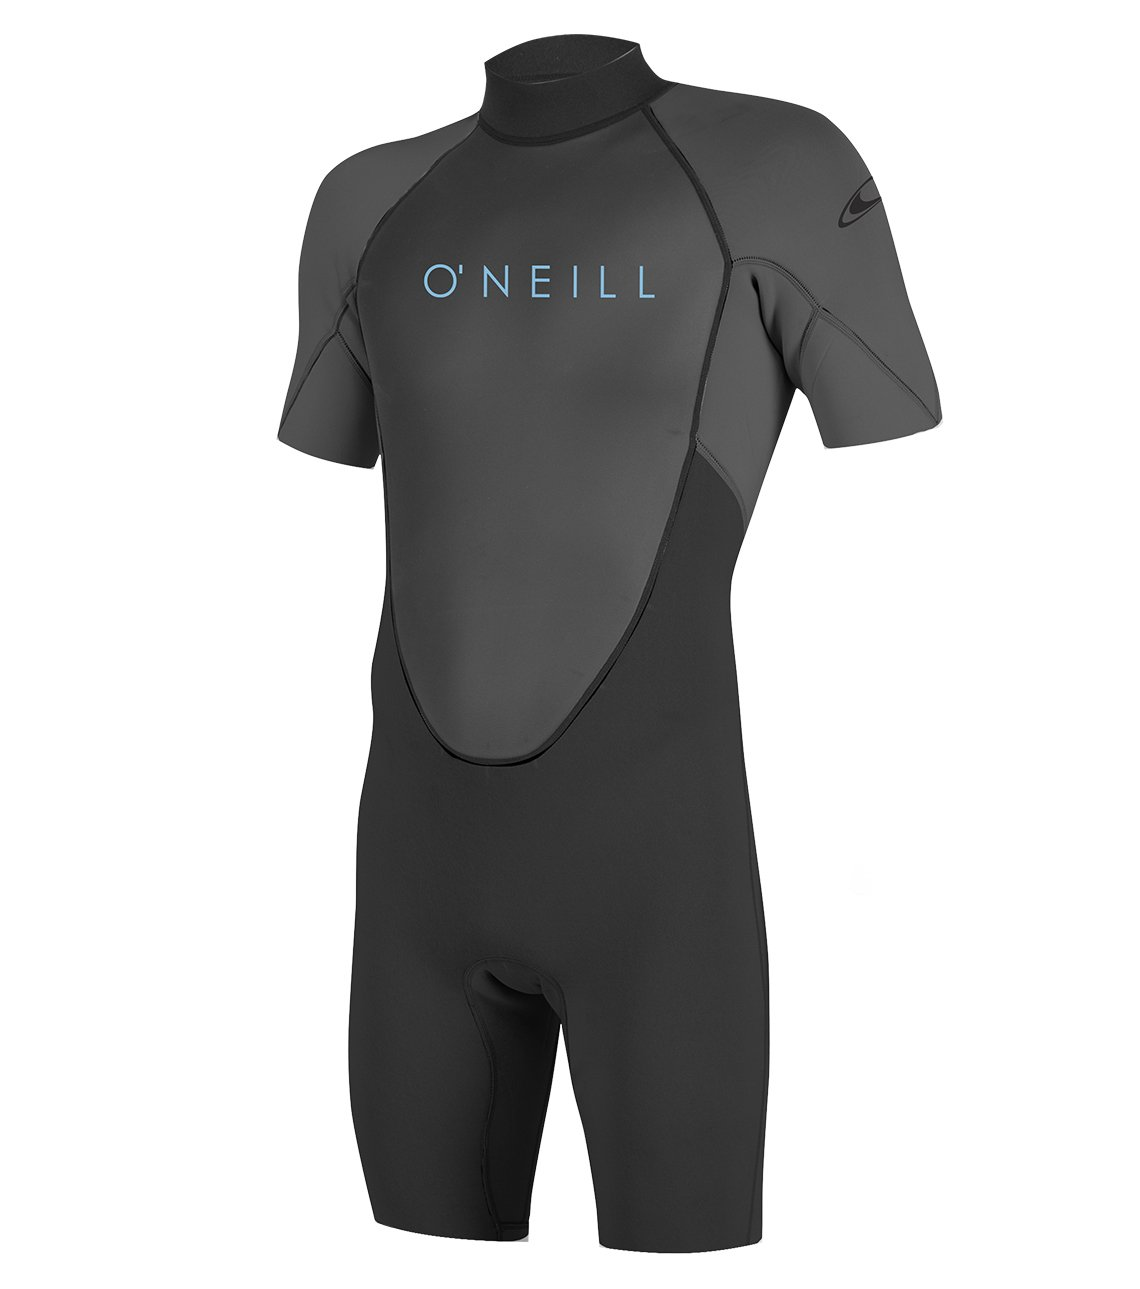 O'Neill Youth Reactor-2 2mm Back Zip Short Sleeve Spring Wetsuit, Black/Graphite, 6 by O'Neill Wetsuits (Image #1)